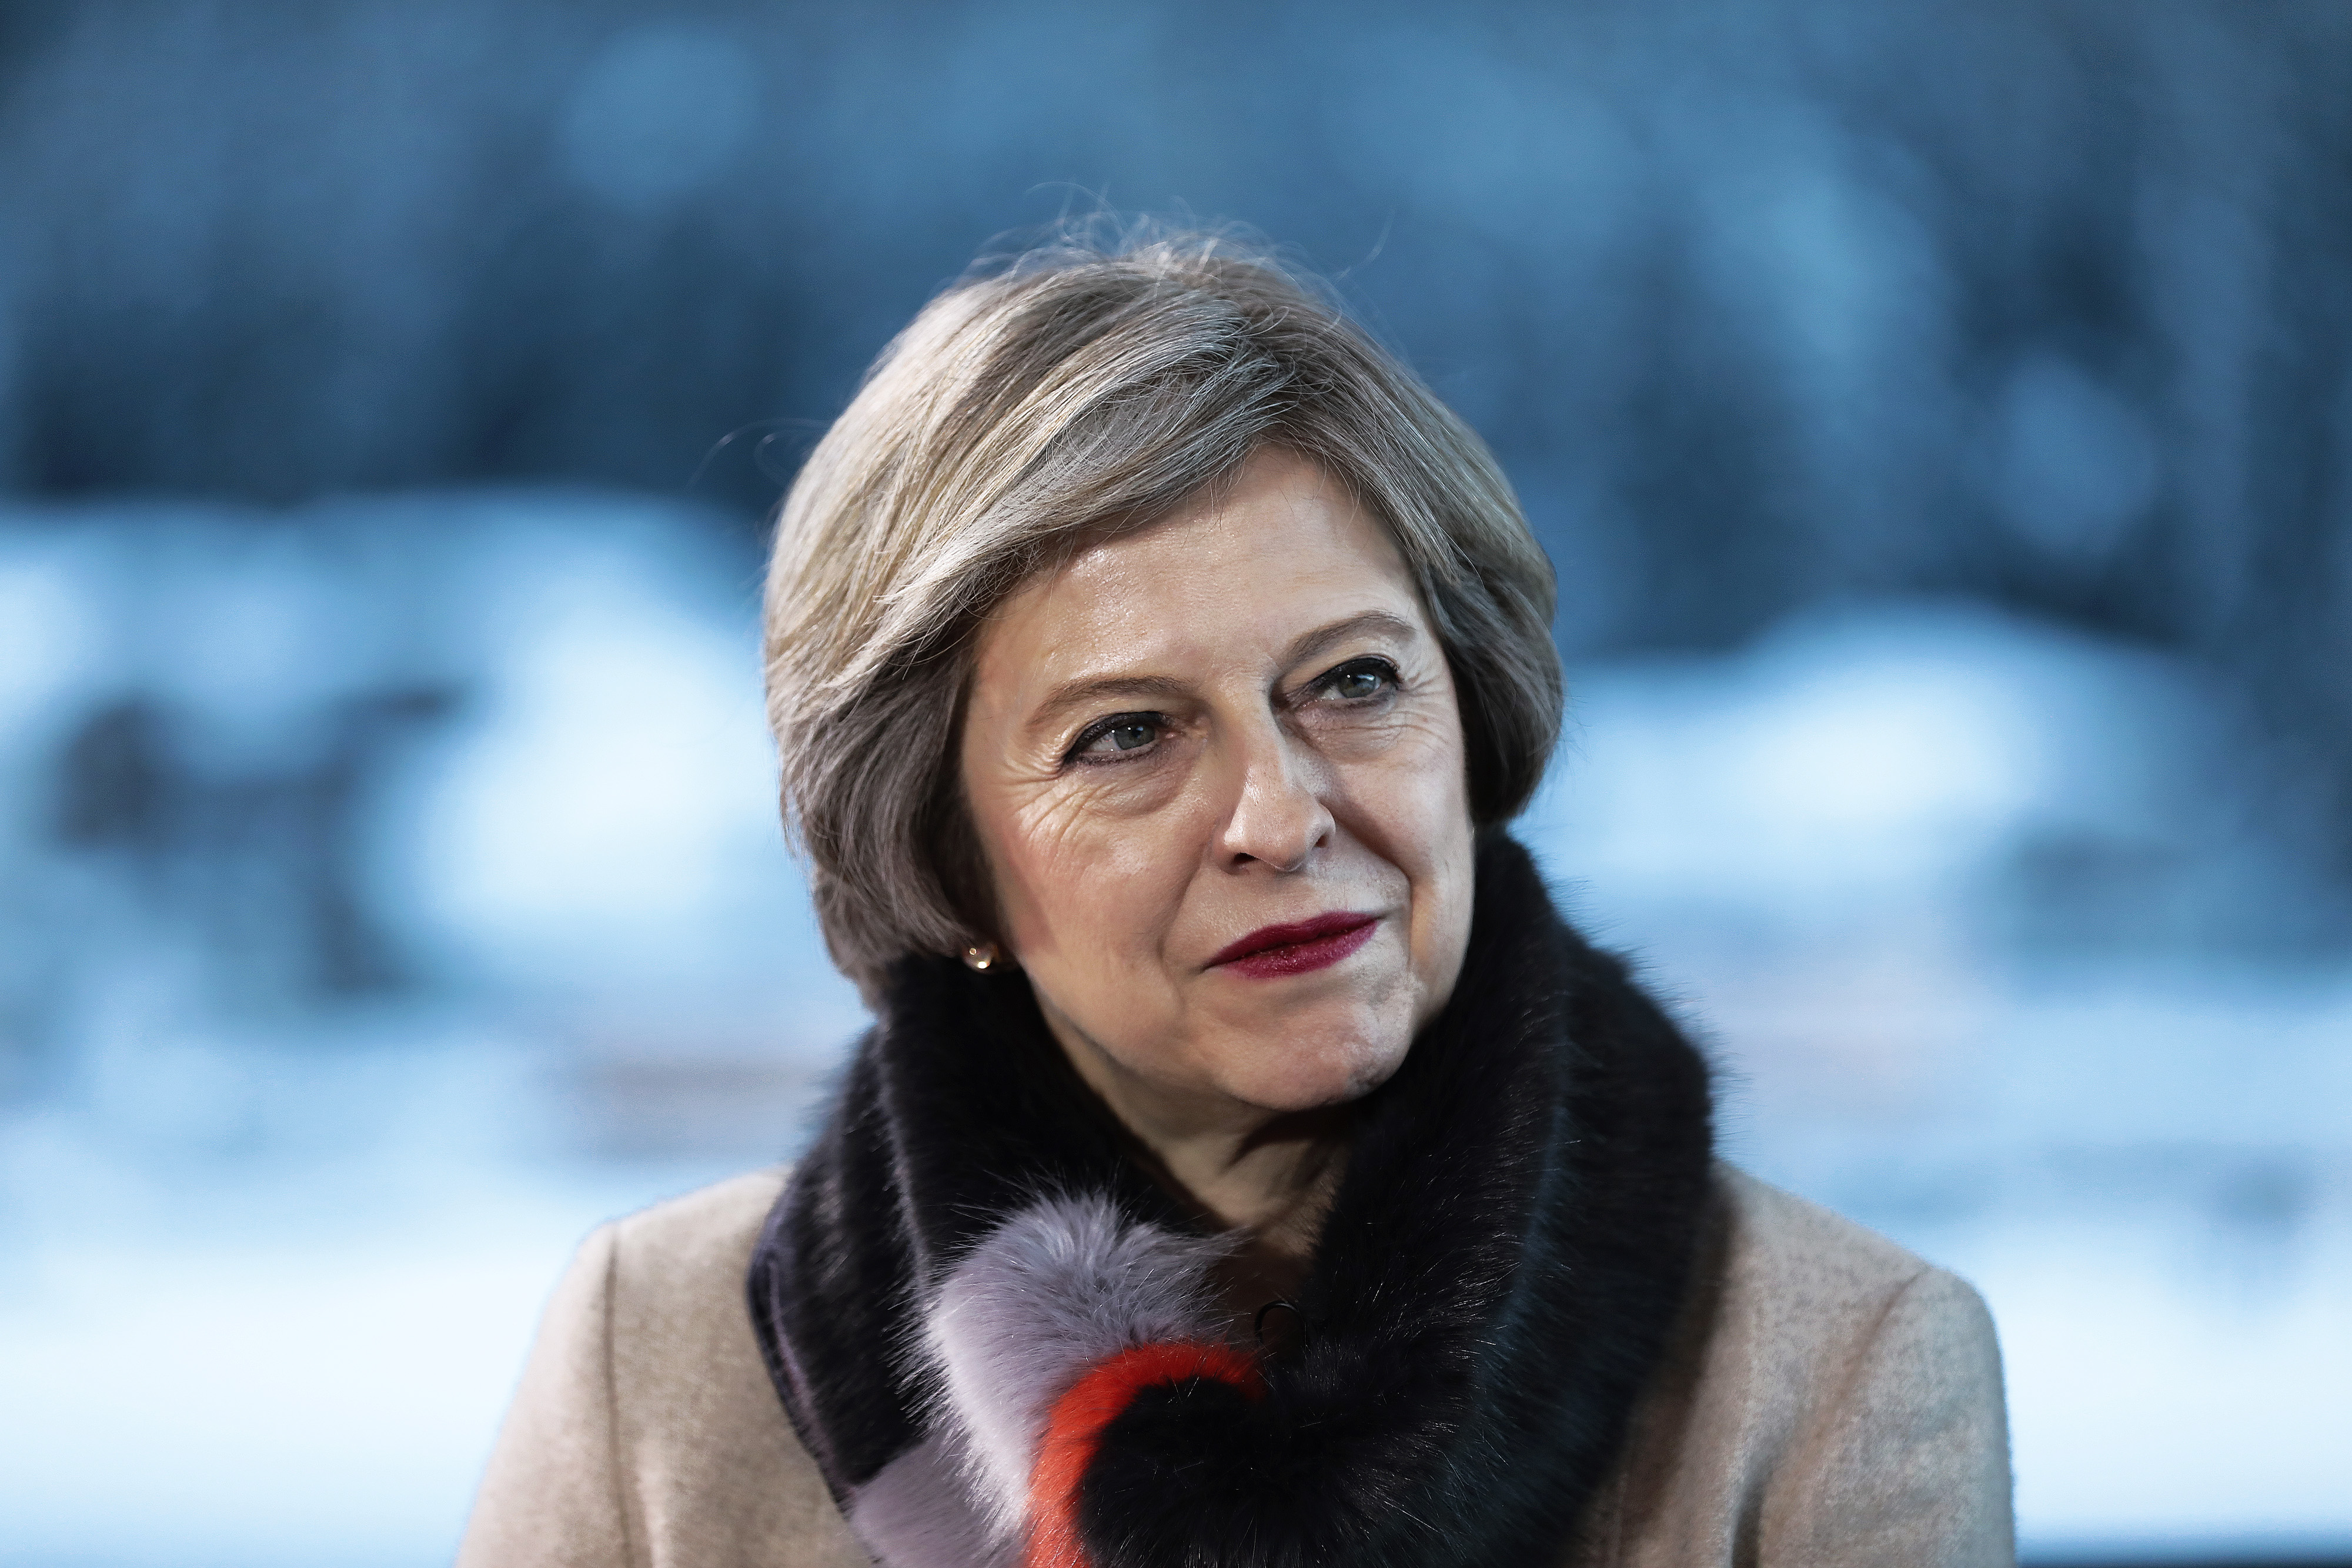 Theresa May, U.K. prime minister, looks on during a Bloomberg Television interview at the World Economic Forum (WEF) in Davos, Switzerland, on Thursday, Jan. 19, 2017.